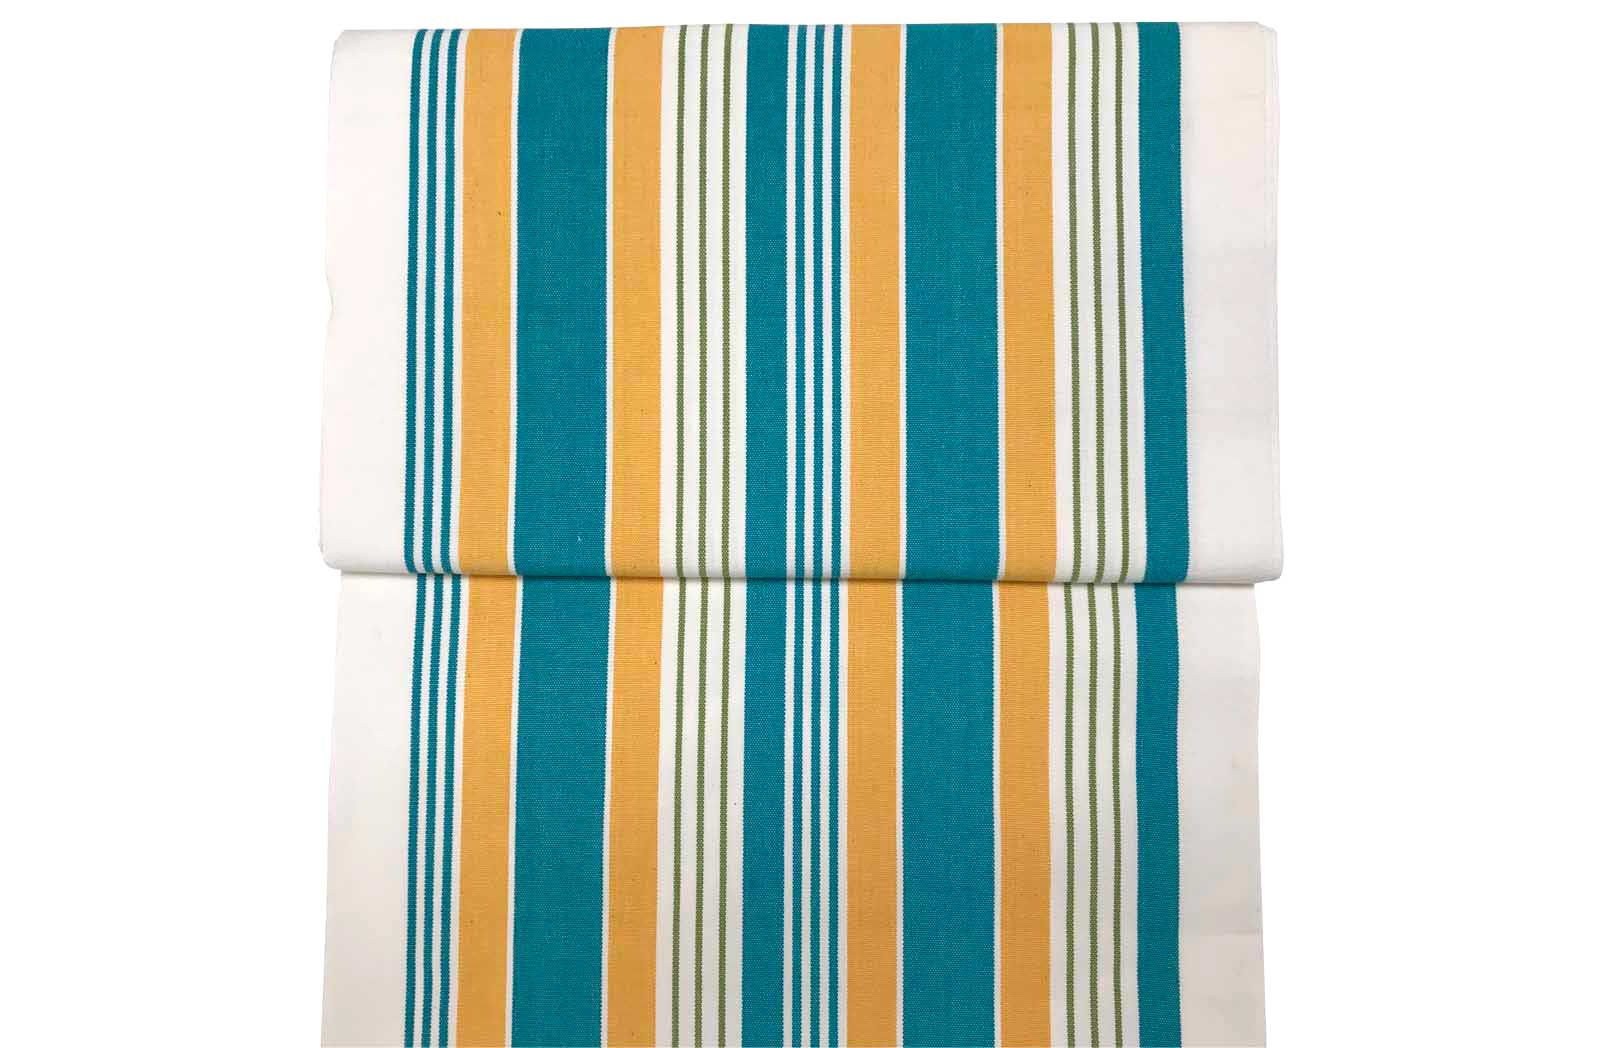 Replacement Deck Chair Slings White, turquoise, yellow